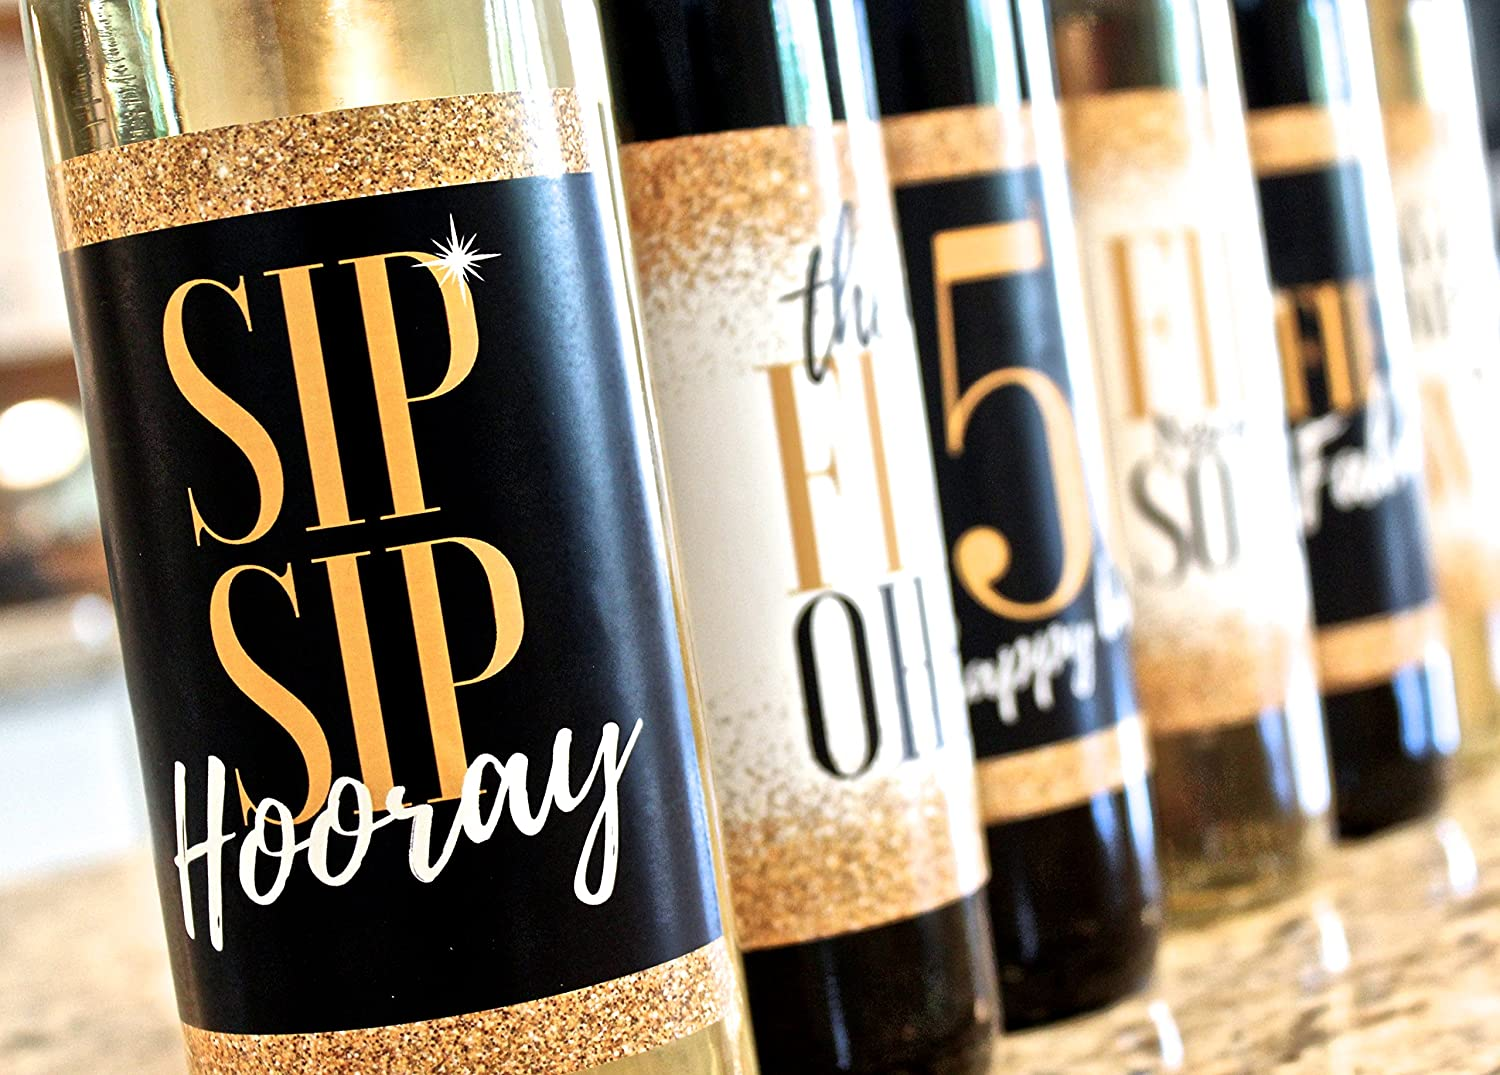 Mom Fifty Never Looked So Good Girl Funny Fifty Black /& Gold Party Decorations Supplies for Friend Bday Gifts for Her Wife 6 Premium 50th Birthday Wine Bottle Labels Or Stickers Present